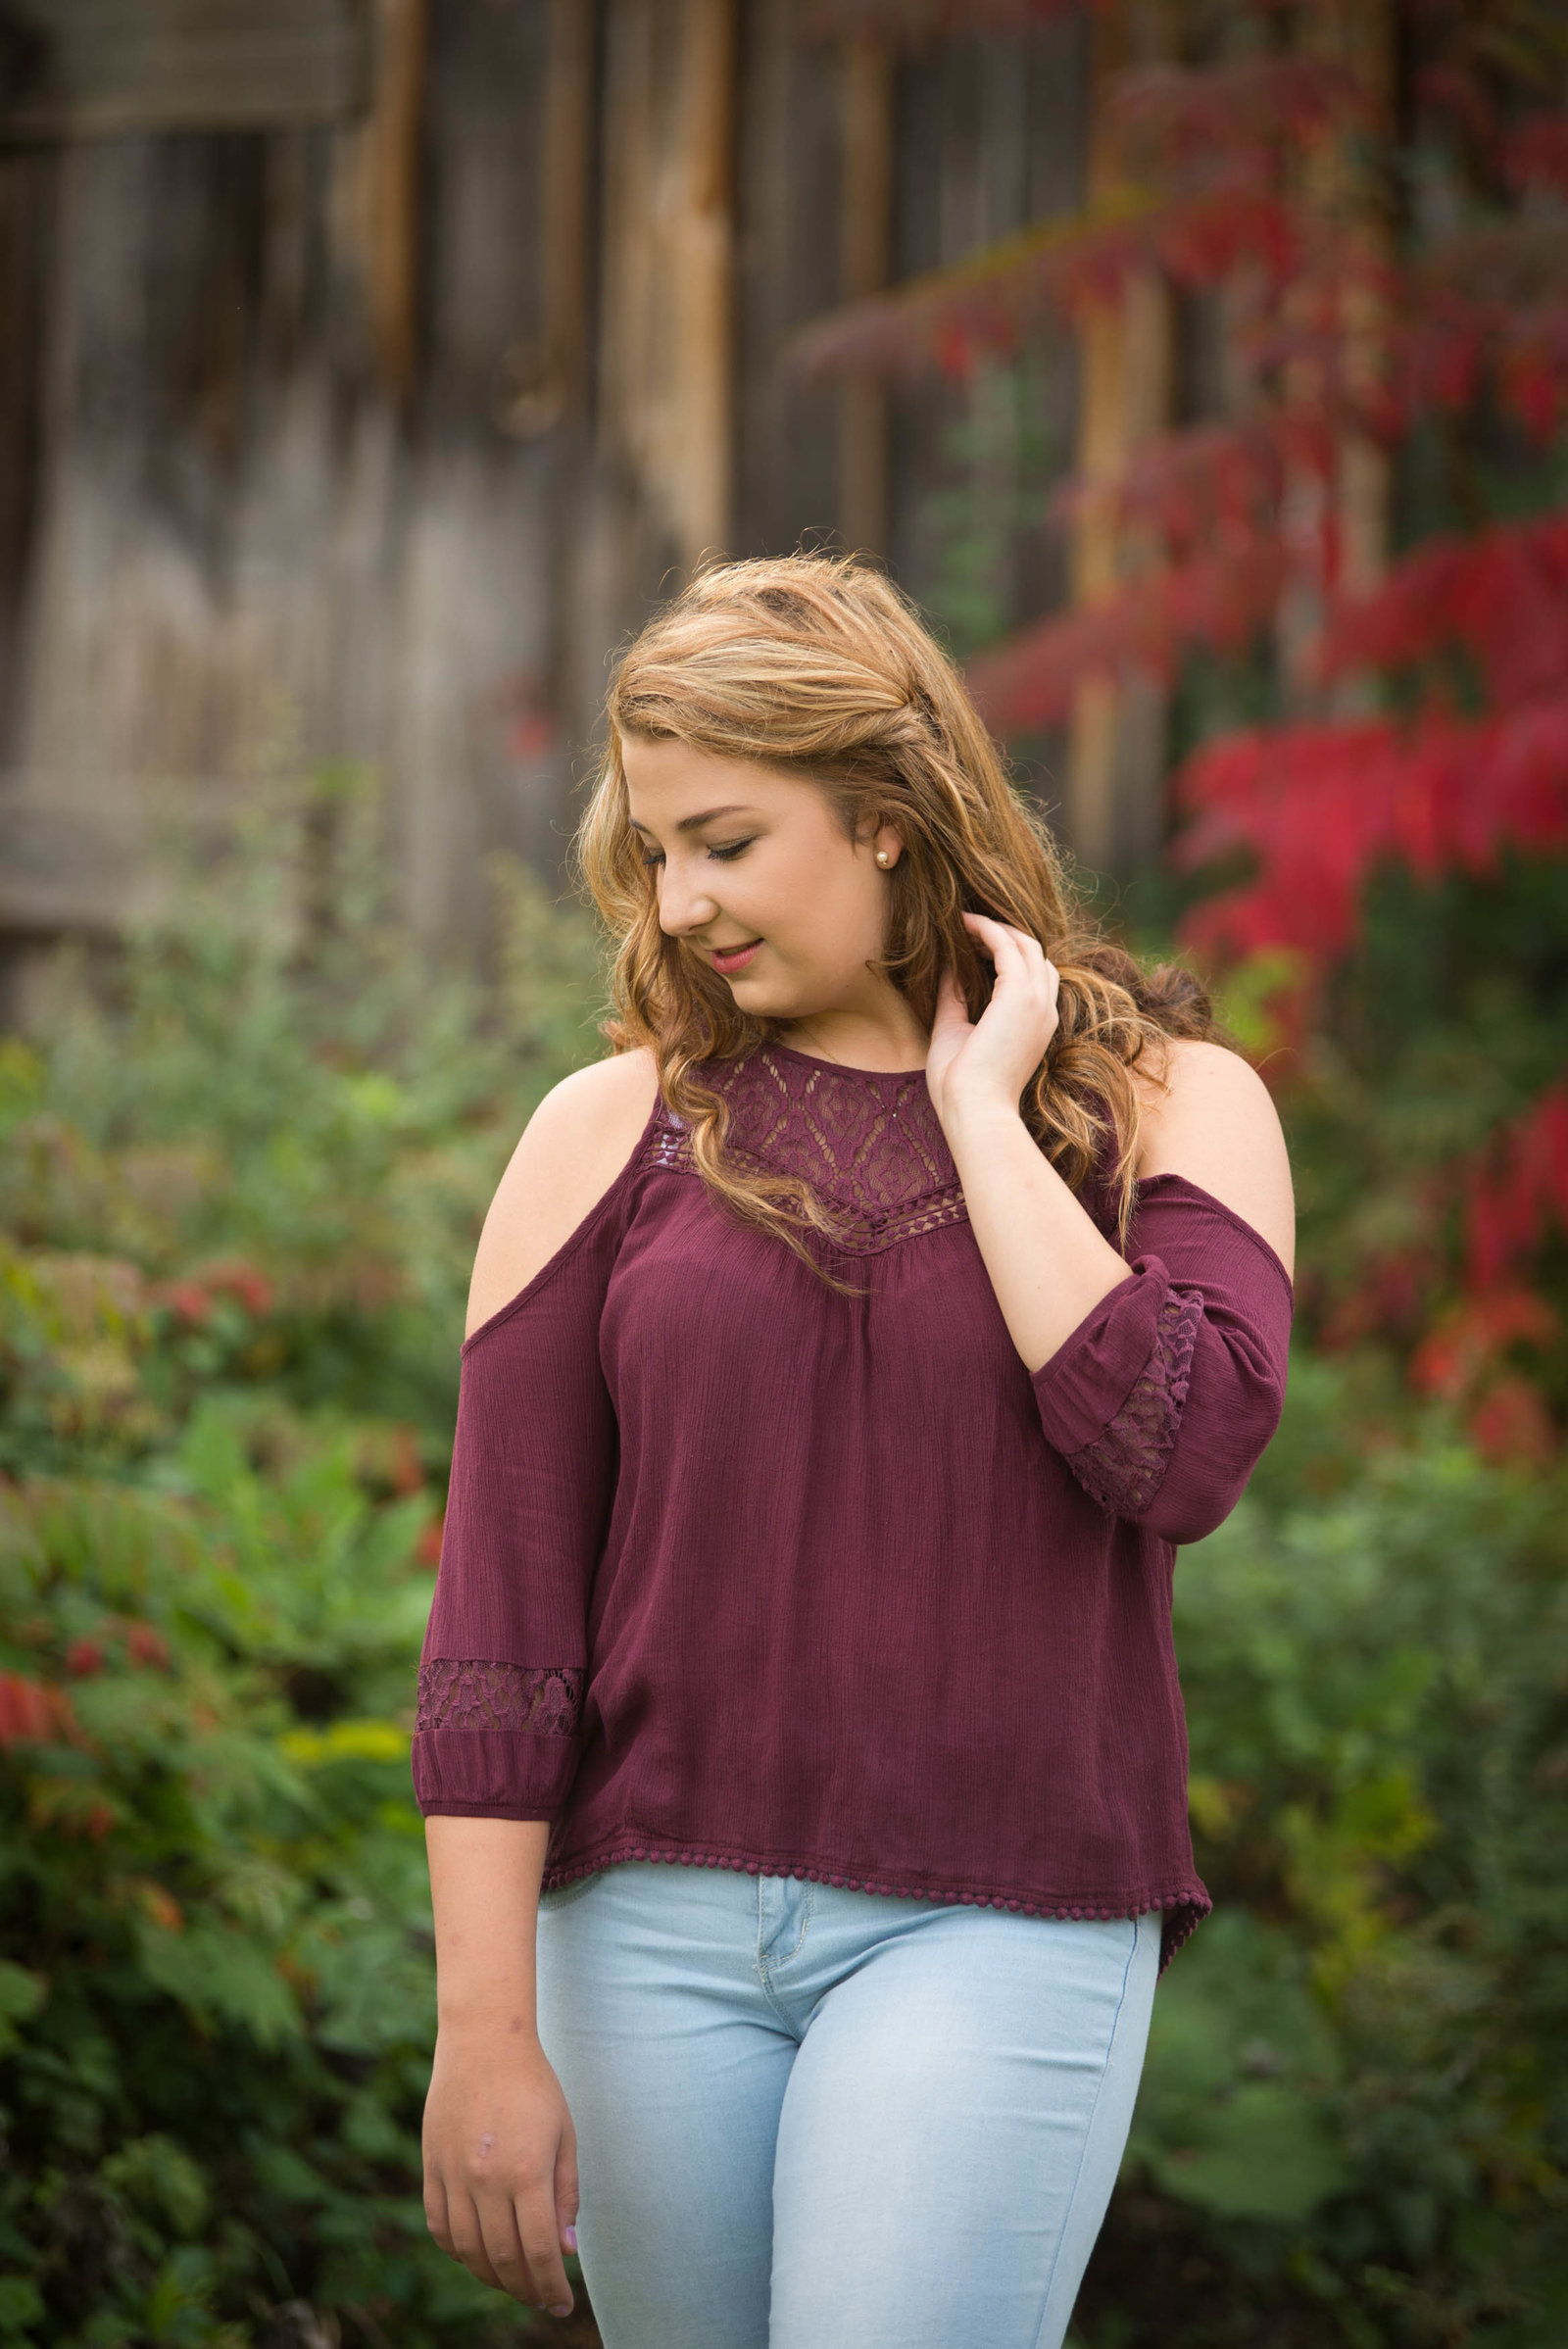 Abby Hine's Senior Portraits-27